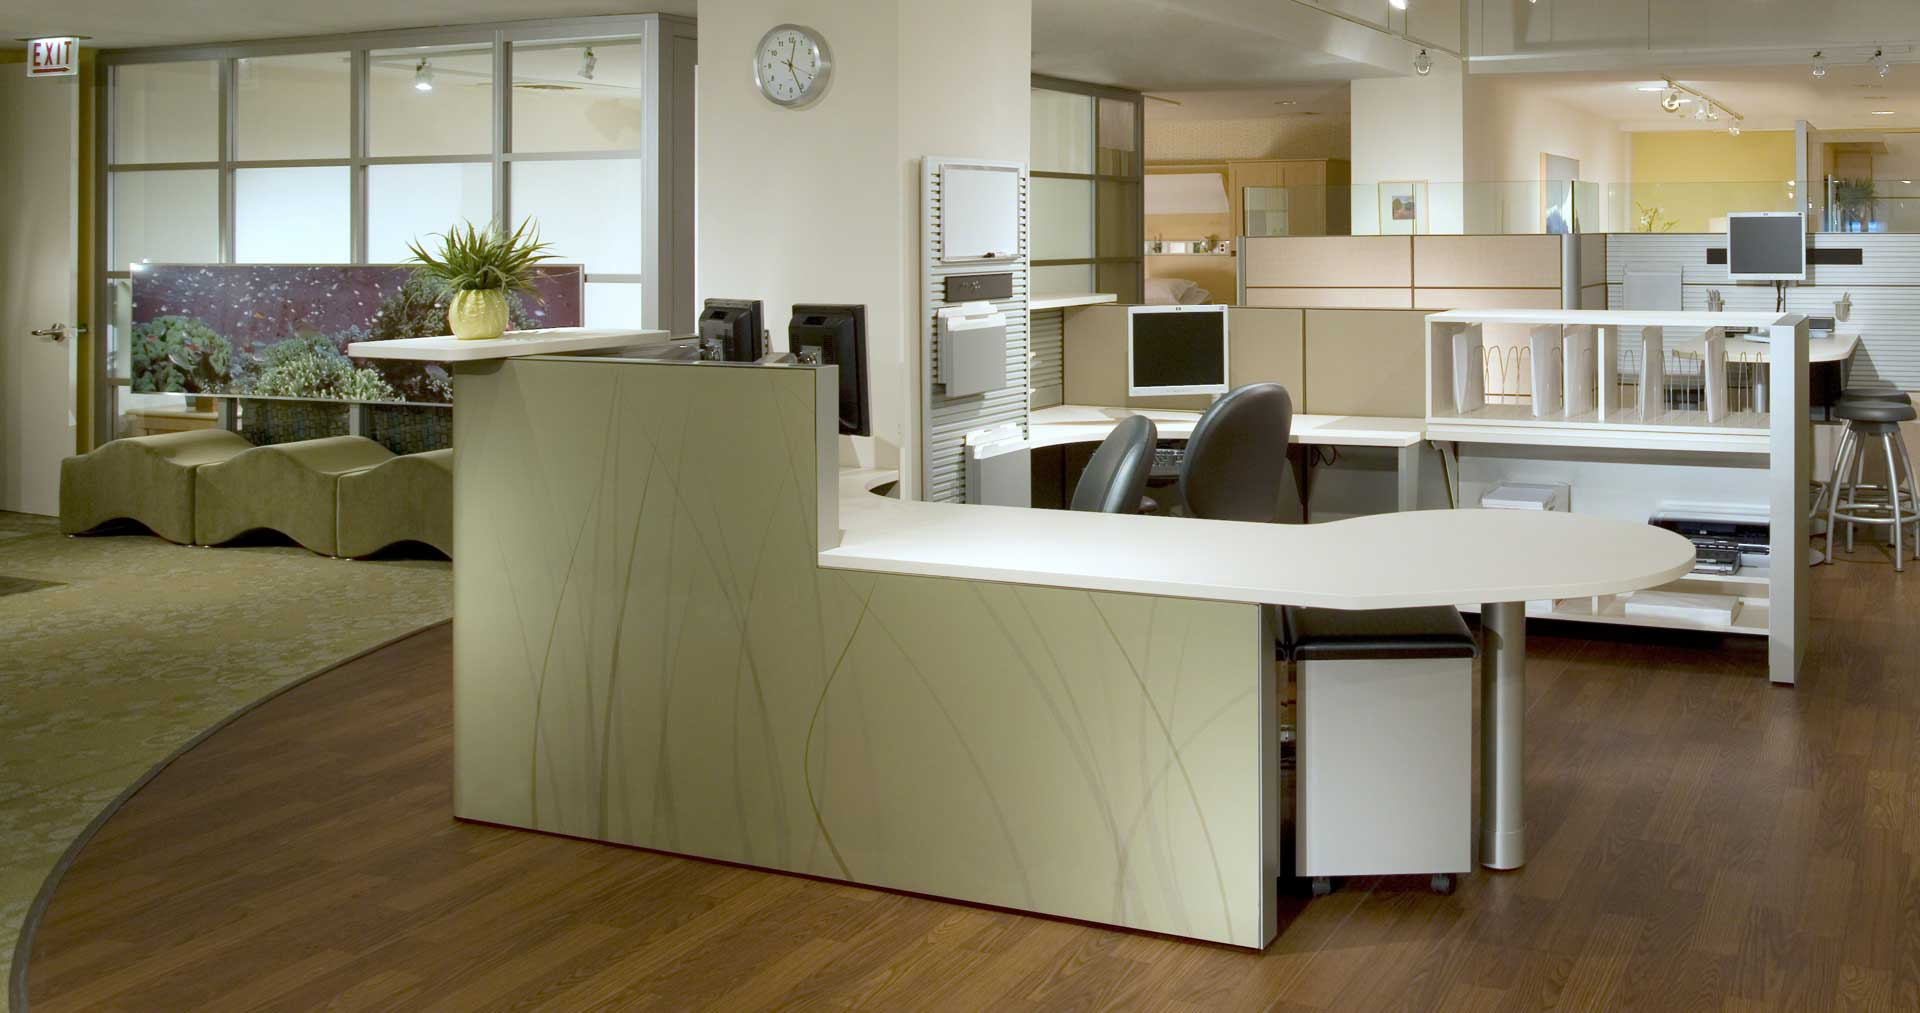 Montage-Systems-Criterion-Stools-Verge-Stools-Ripple-Lounge-07-0001504.DL17